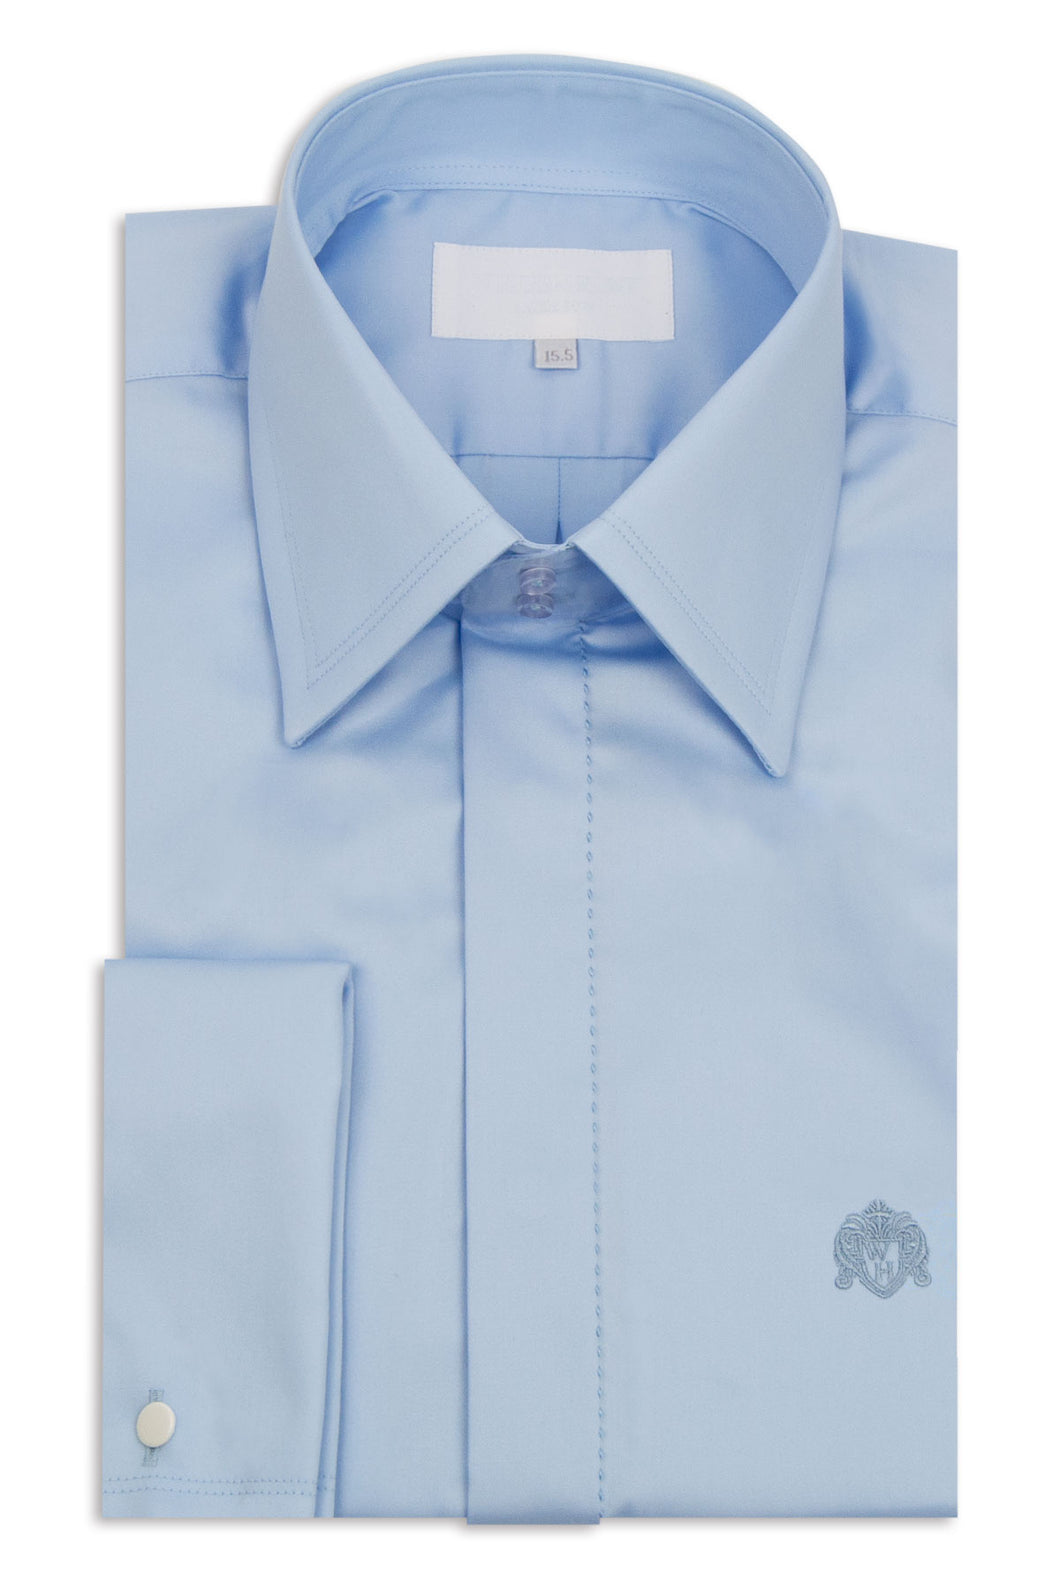 Classic Sky Blue Forward Point Collar Shirt